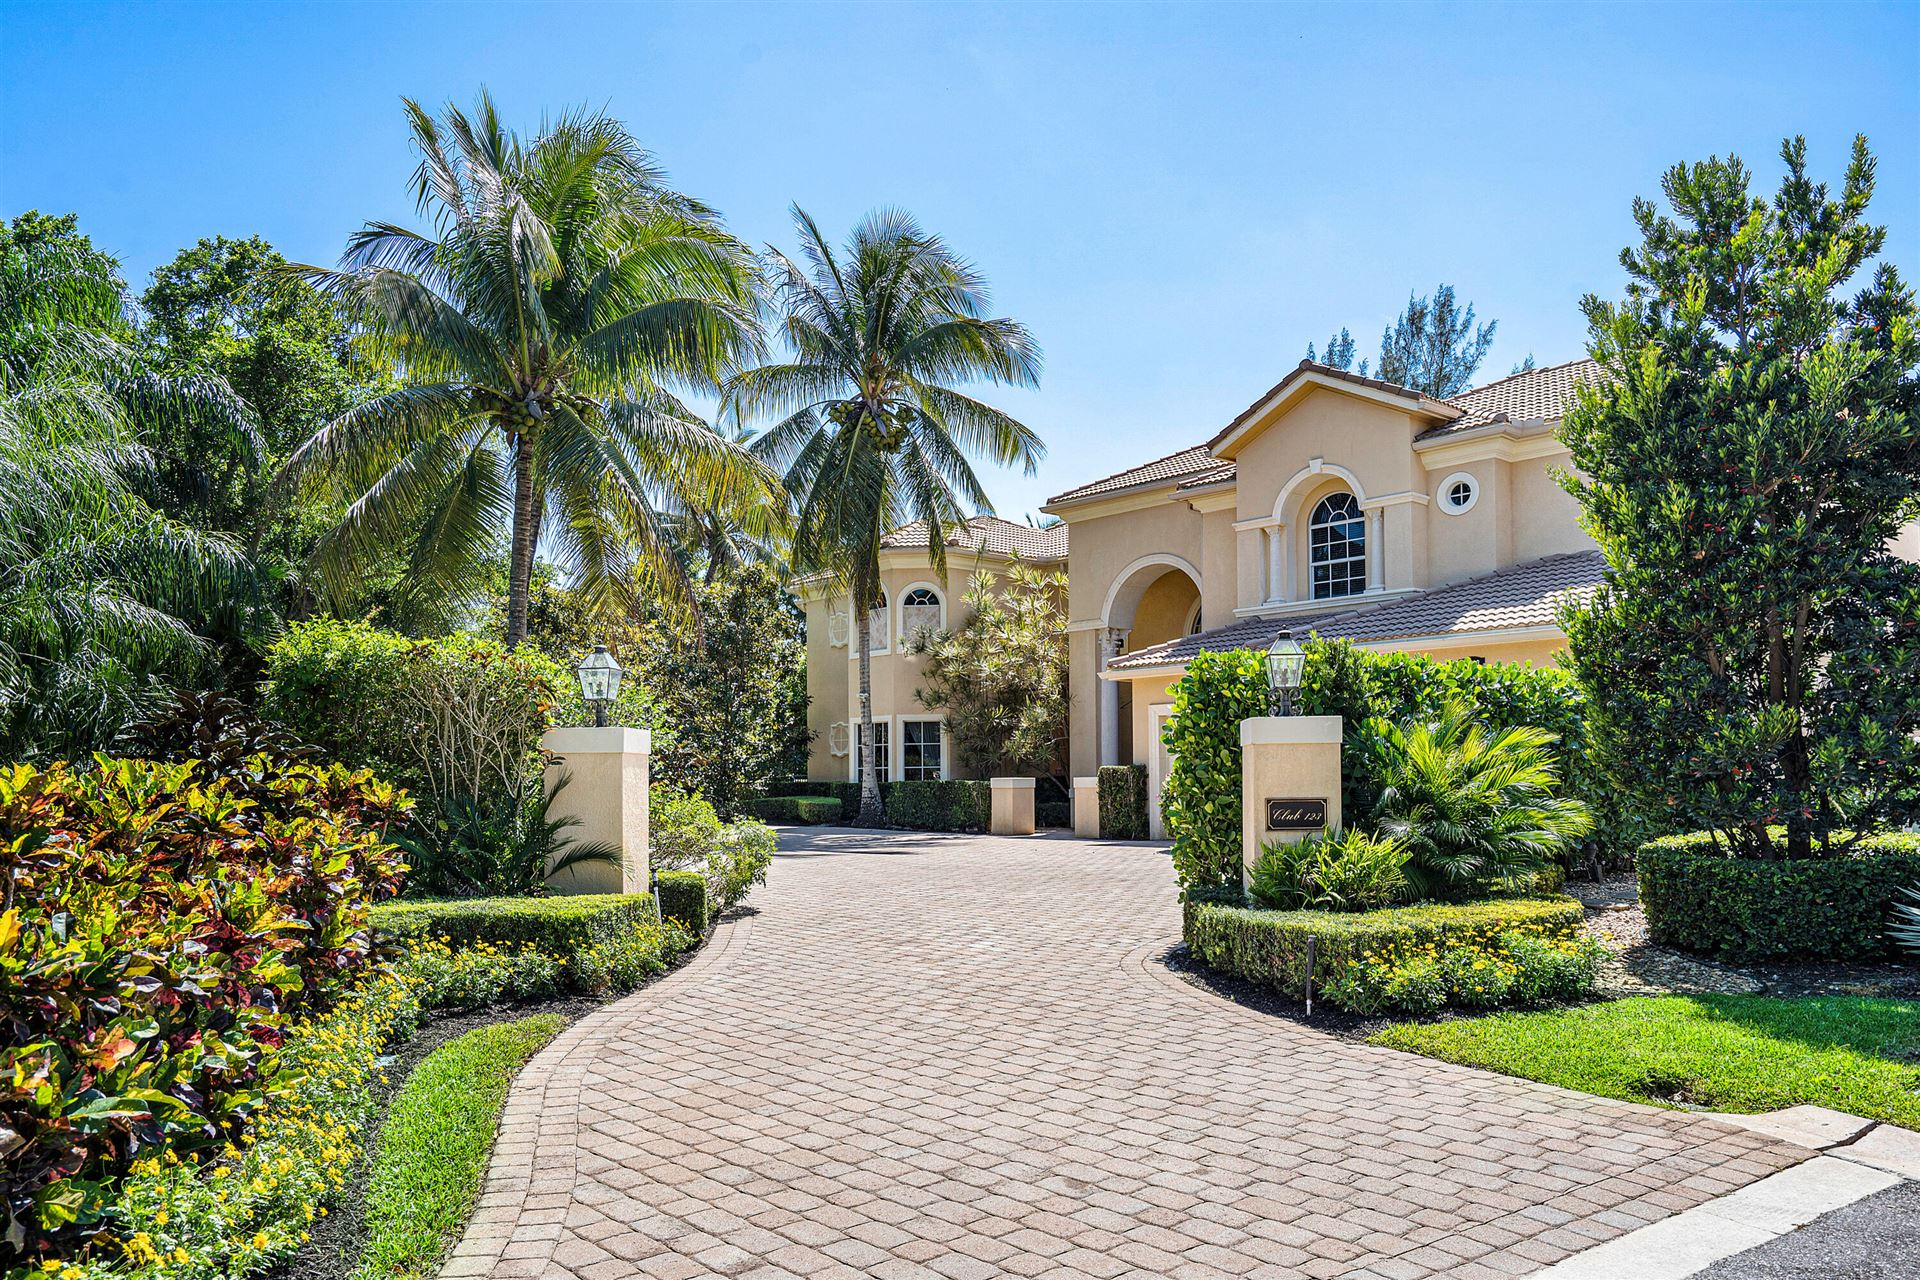 Photo of 123 San Marita Way, Palm Beach Gardens, FL 33418 (MLS # RX-10708198)